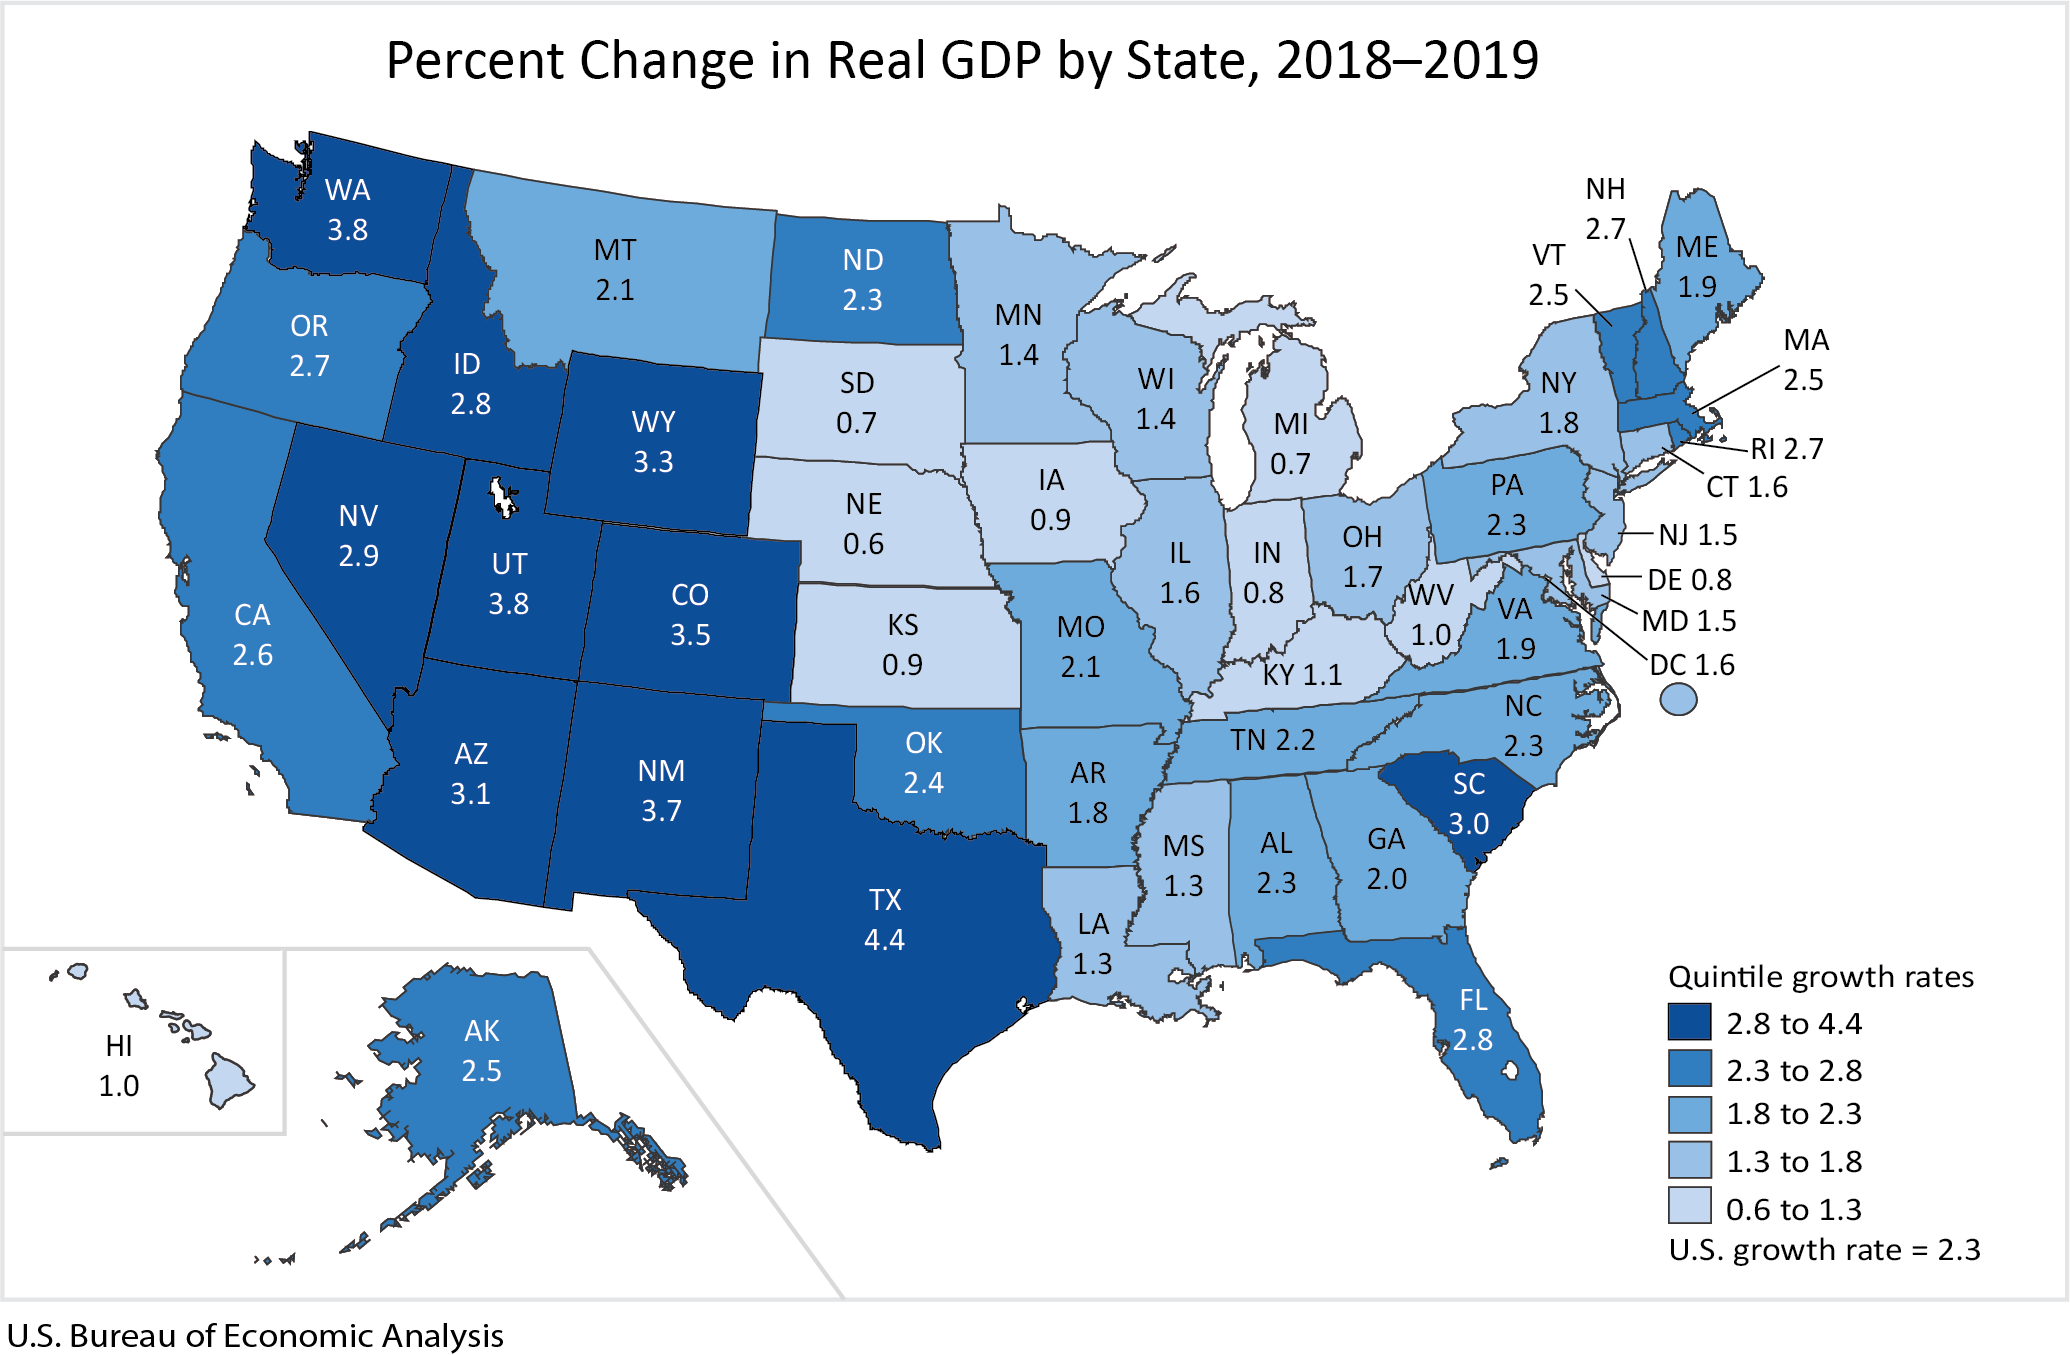 Percent Change in Real GDP by State, 2018-2019